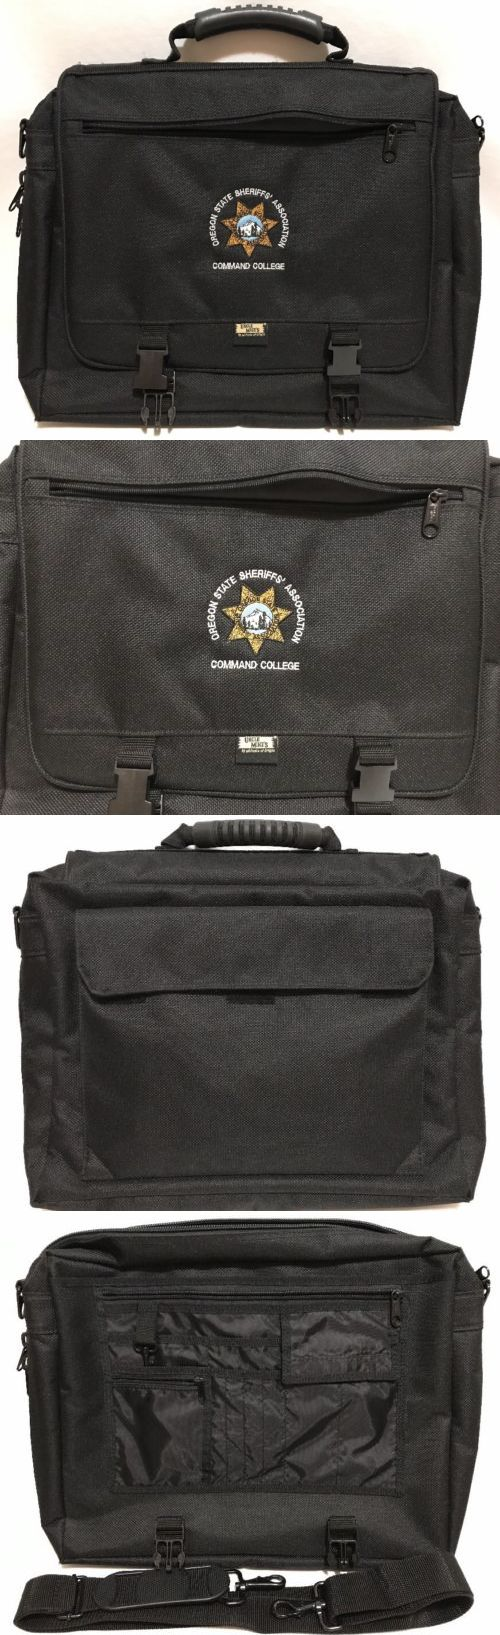 Other Hunting Holsters and Belts 22701: Uncles Mikes Concealed Carry Briefcase Bag Case Or Sheriffs Association Cc Patch -> BUY IT NOW ONLY: $44.89 on eBay!